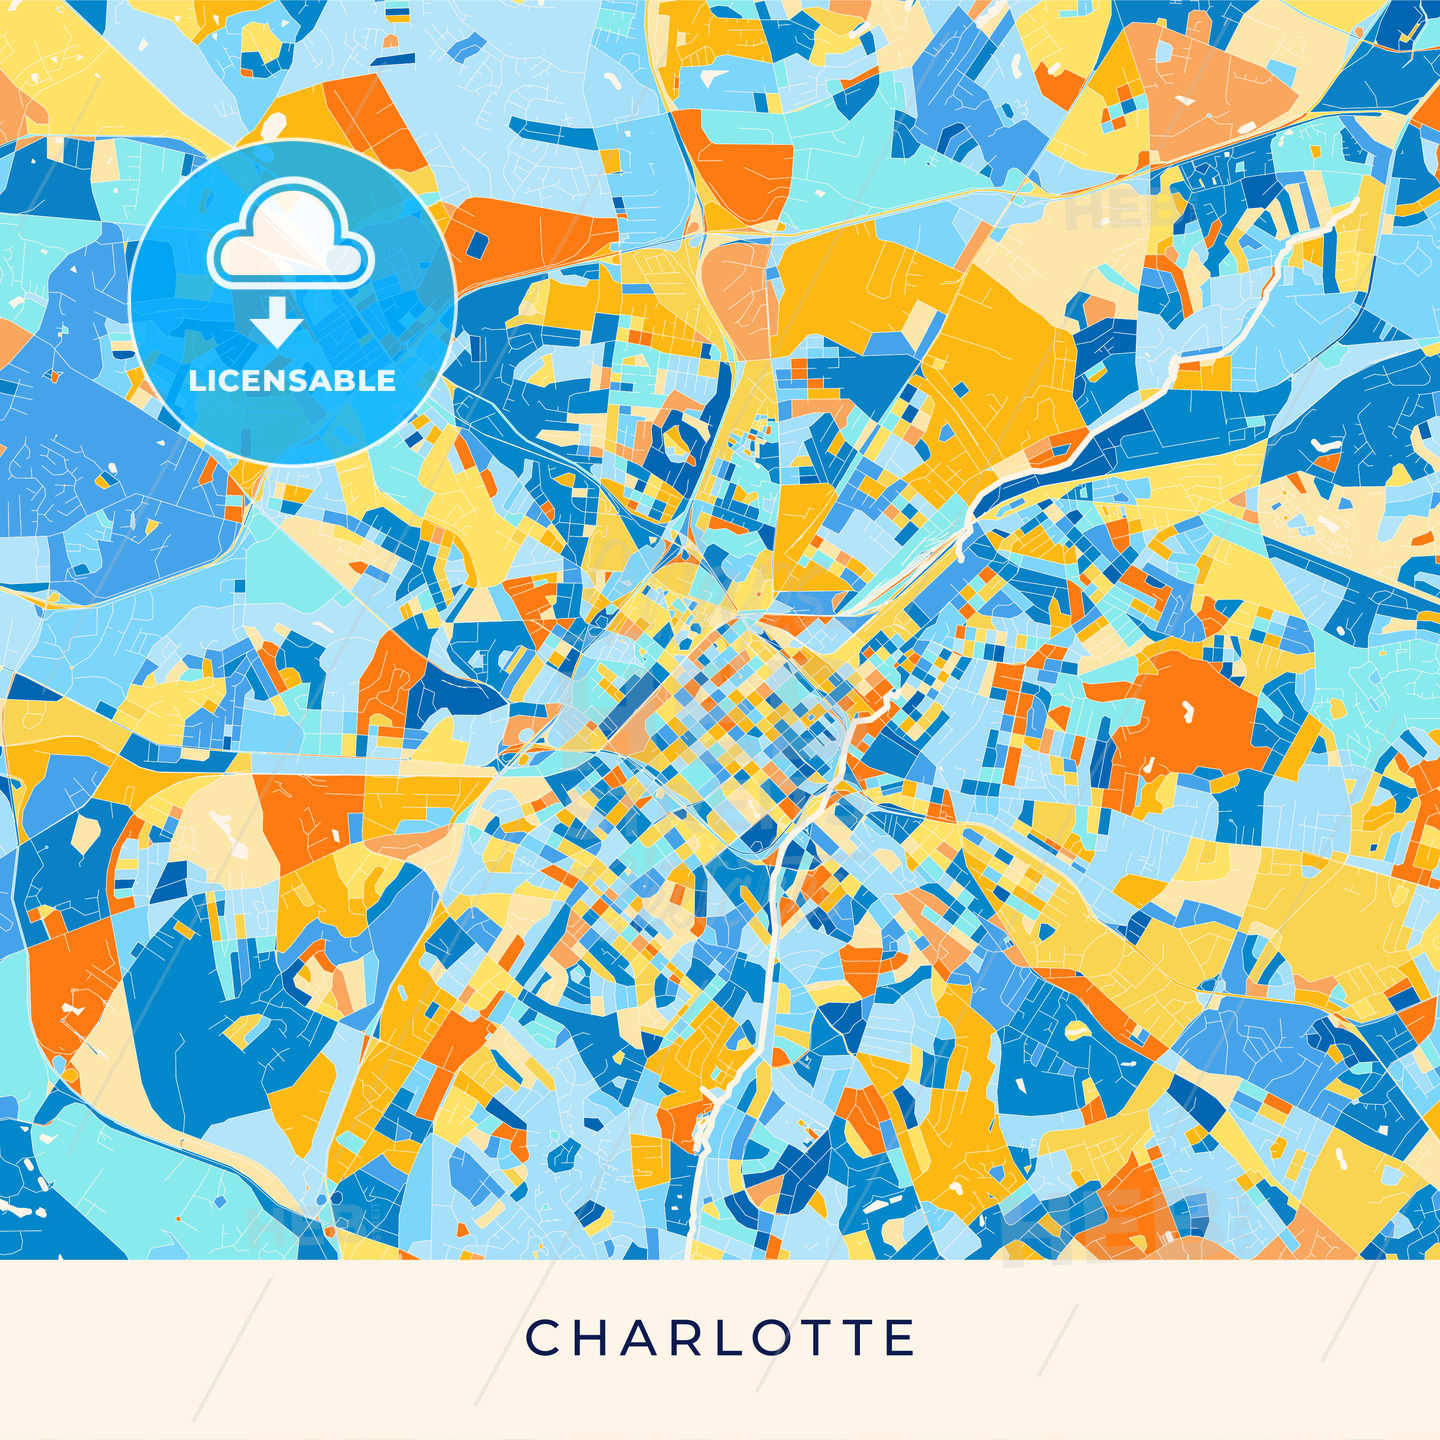 Charlotte colorful map poster template | HEBSTREITS Sketches on